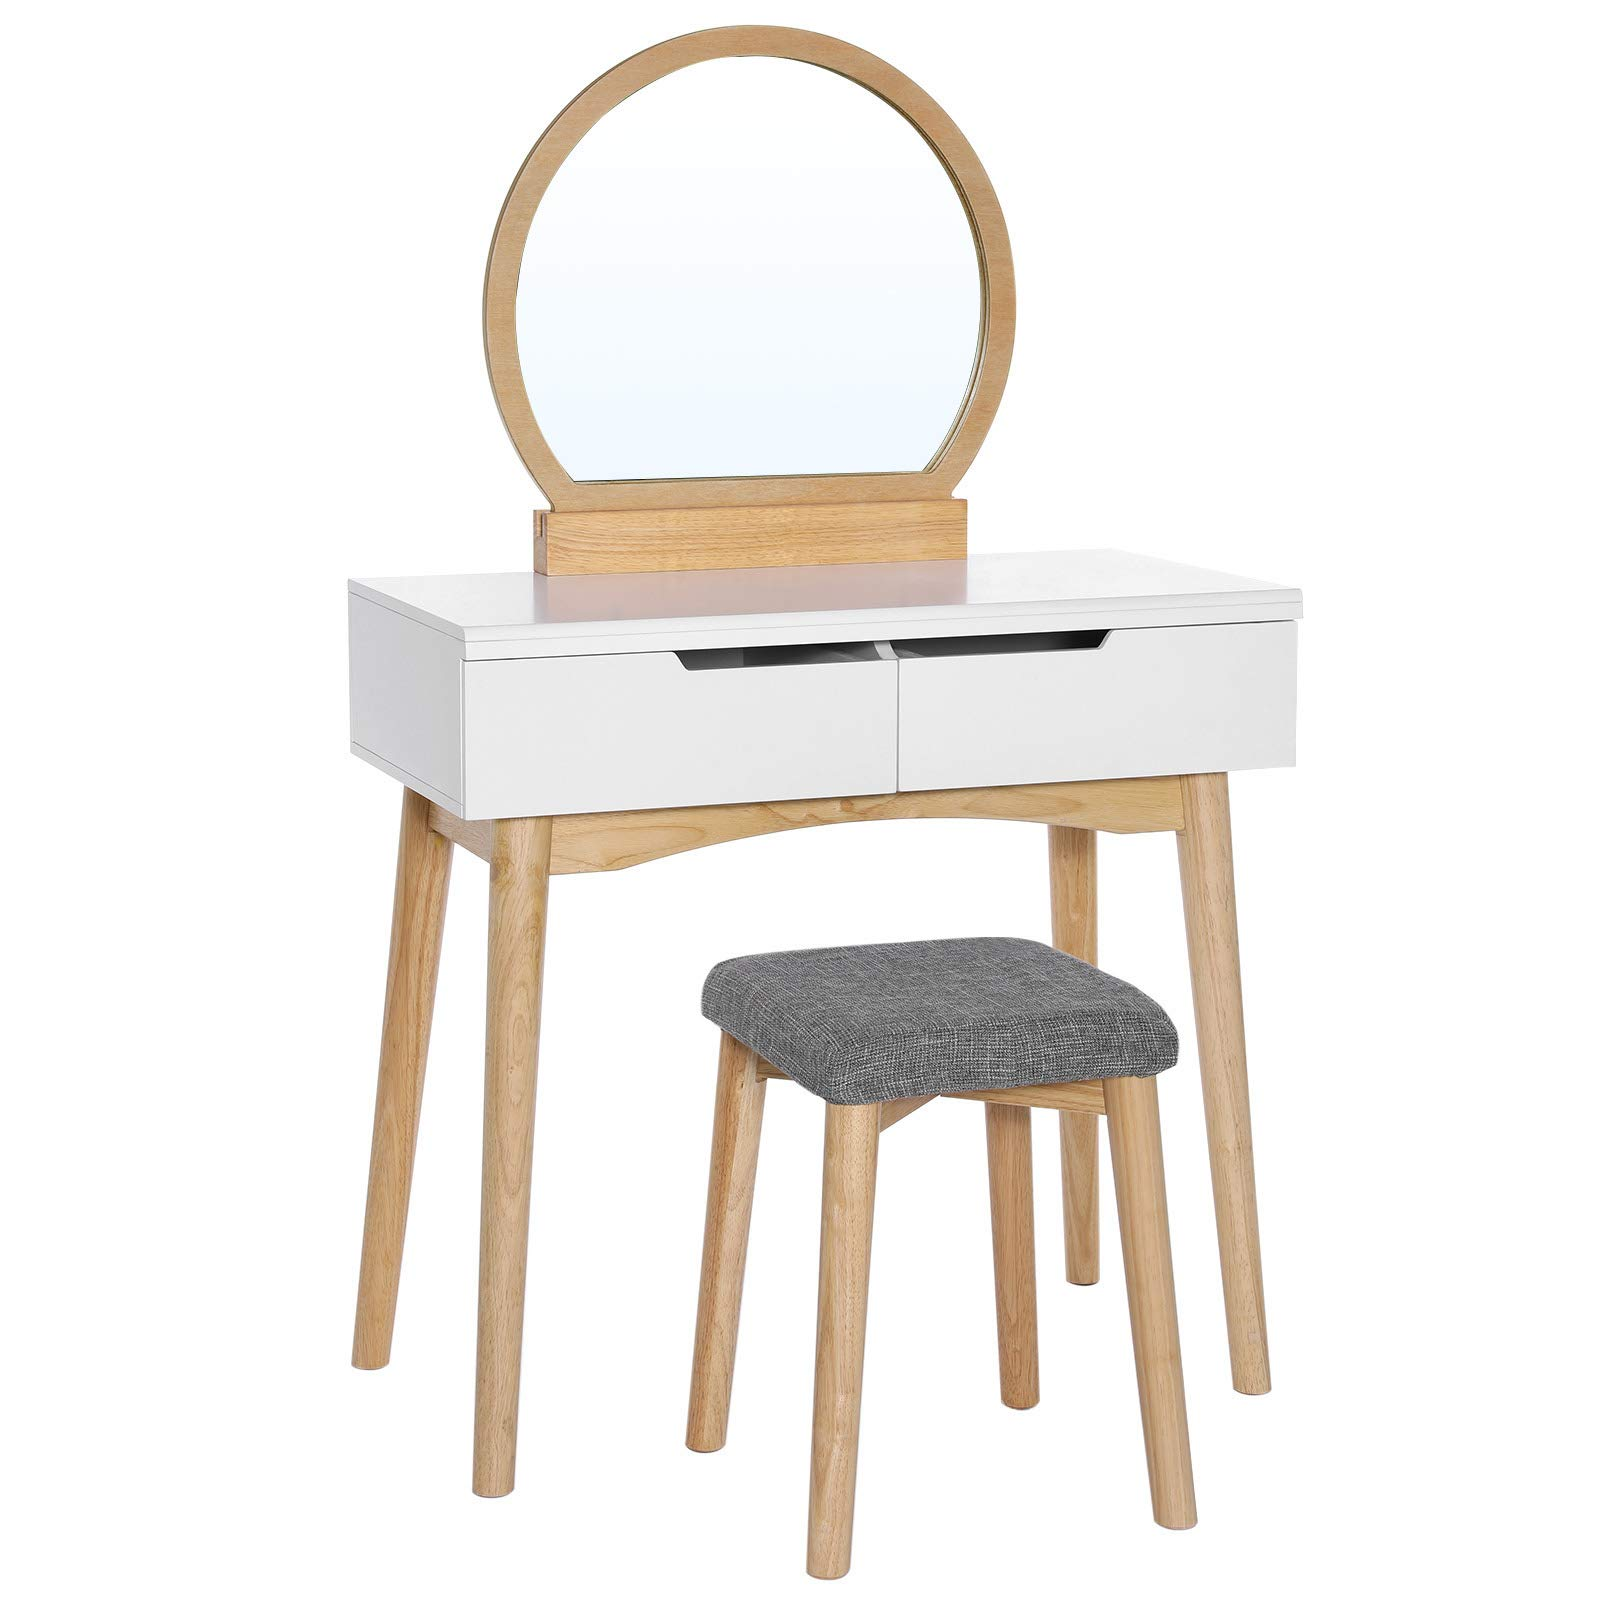 VASAGLE Vanity Table Set with Round Mirror 2 Large Drawers with Sliding Rails Makeup Dressing Table with Cushioned Stool, Natural and White URDT11K by VASAGLE